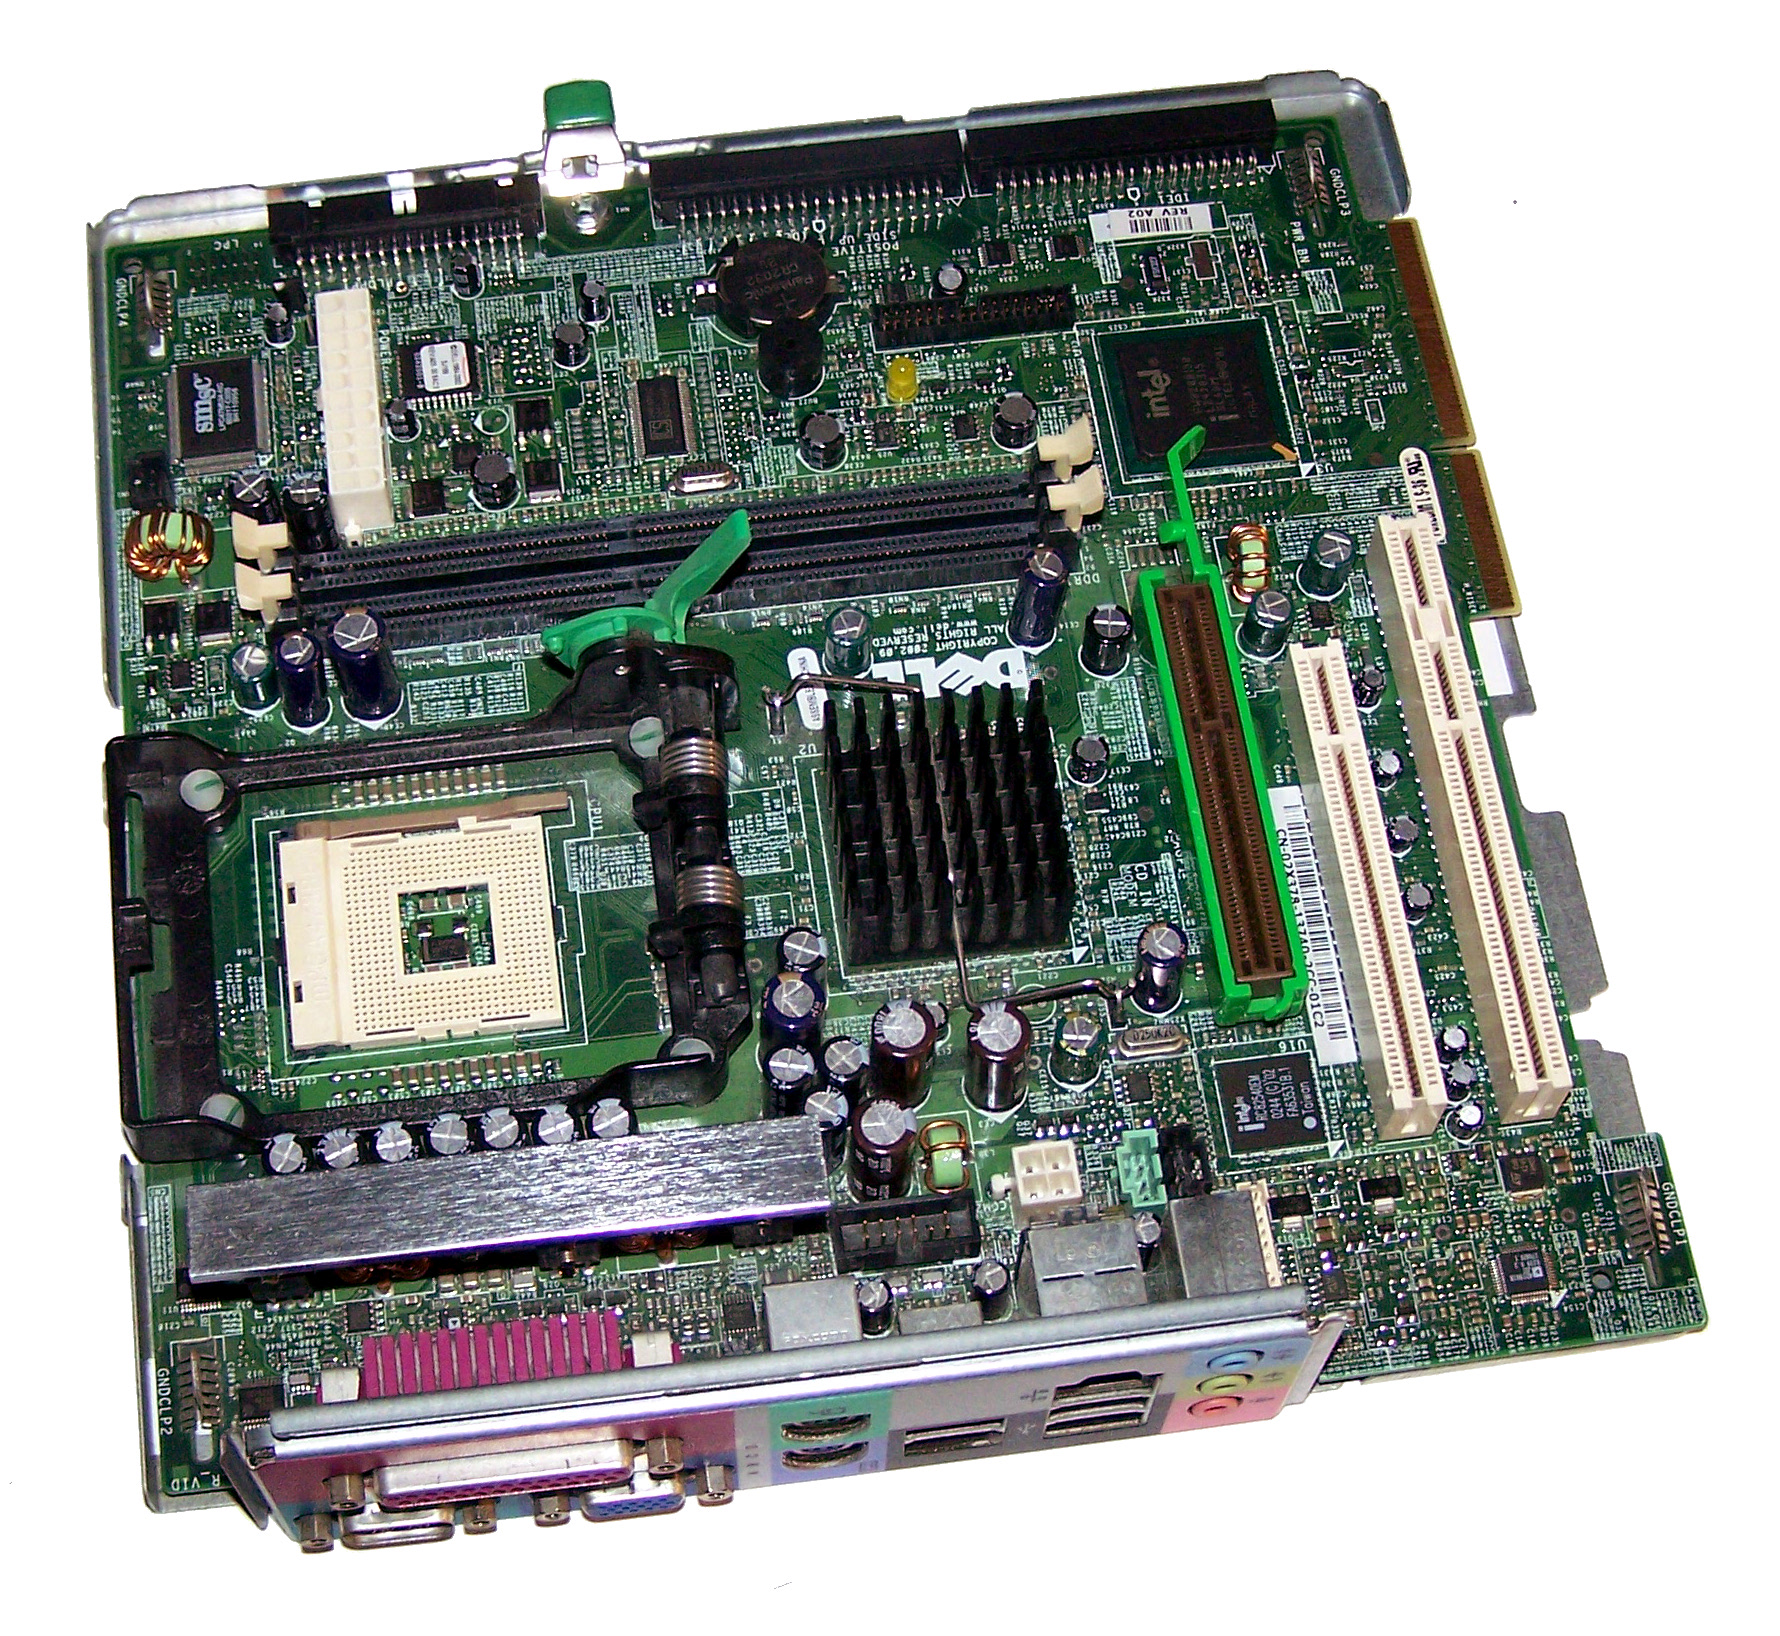 DRIVERS DELL GX260 MOTHERBOARD